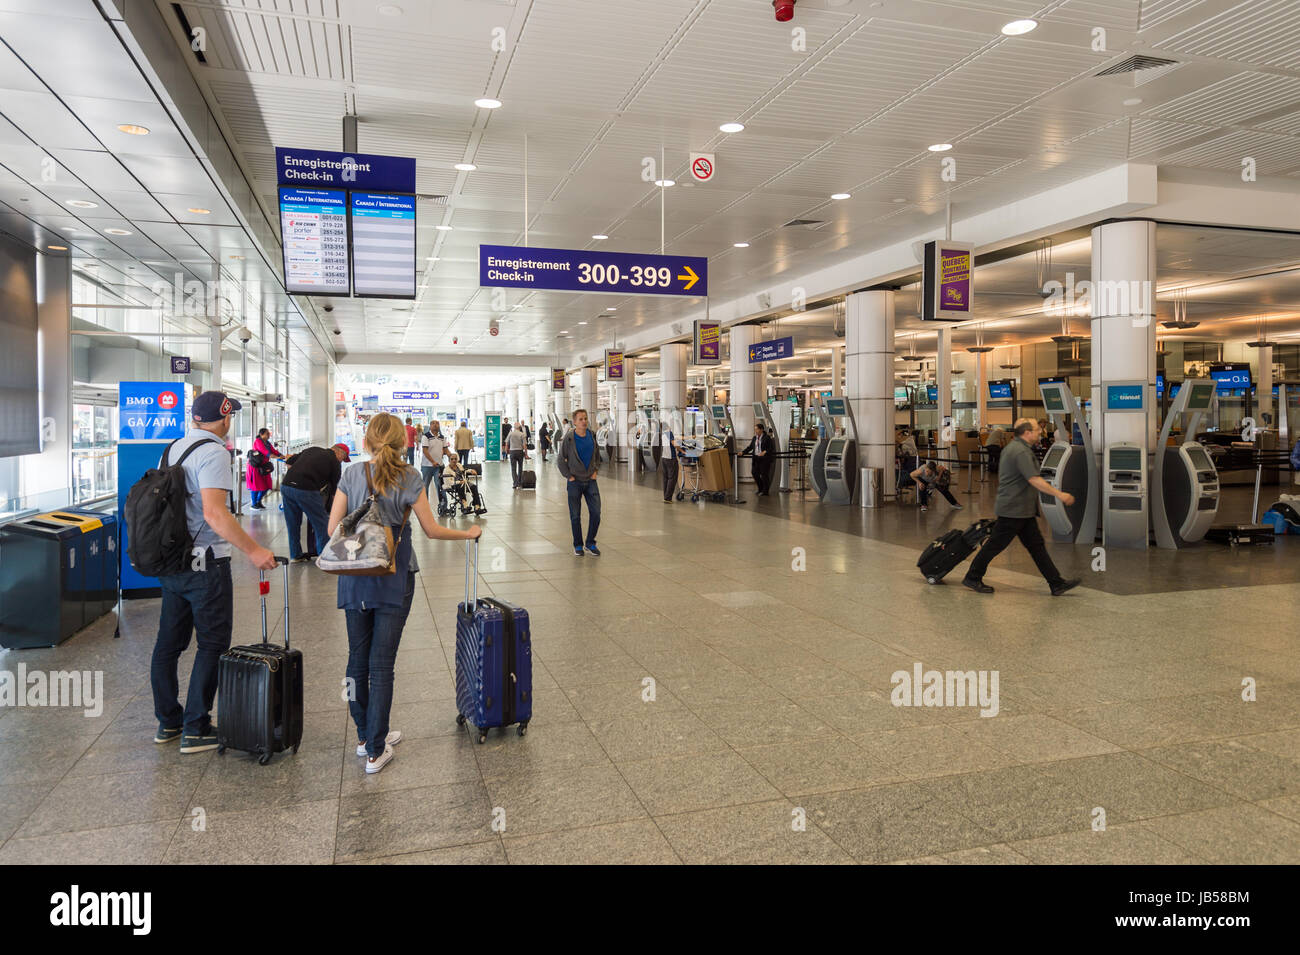 Montreal, CANADA - 8 June 2017: Passengers walking to departure gate at Pierre Elliott Trudeau International Airport - Stock Image